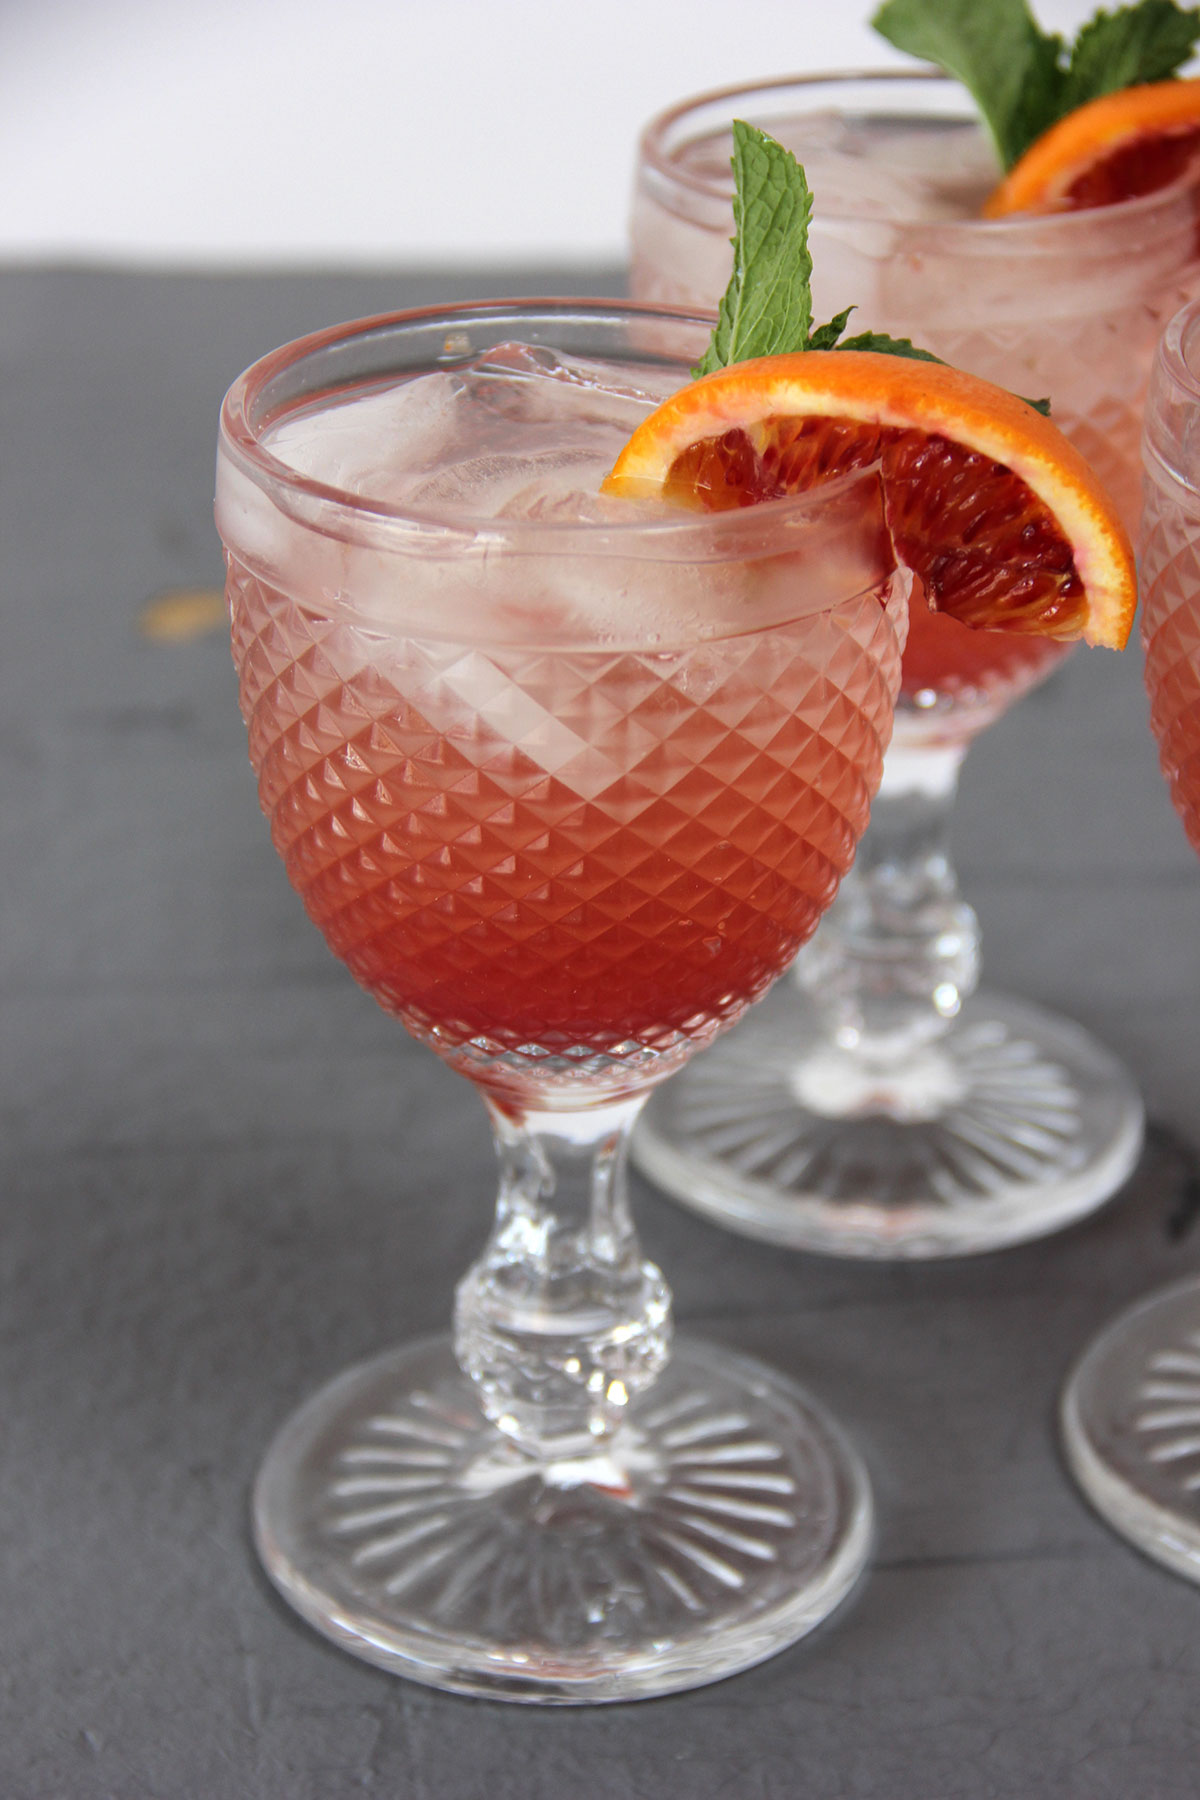 Grapefruit blood orange spritzer with mint garnish